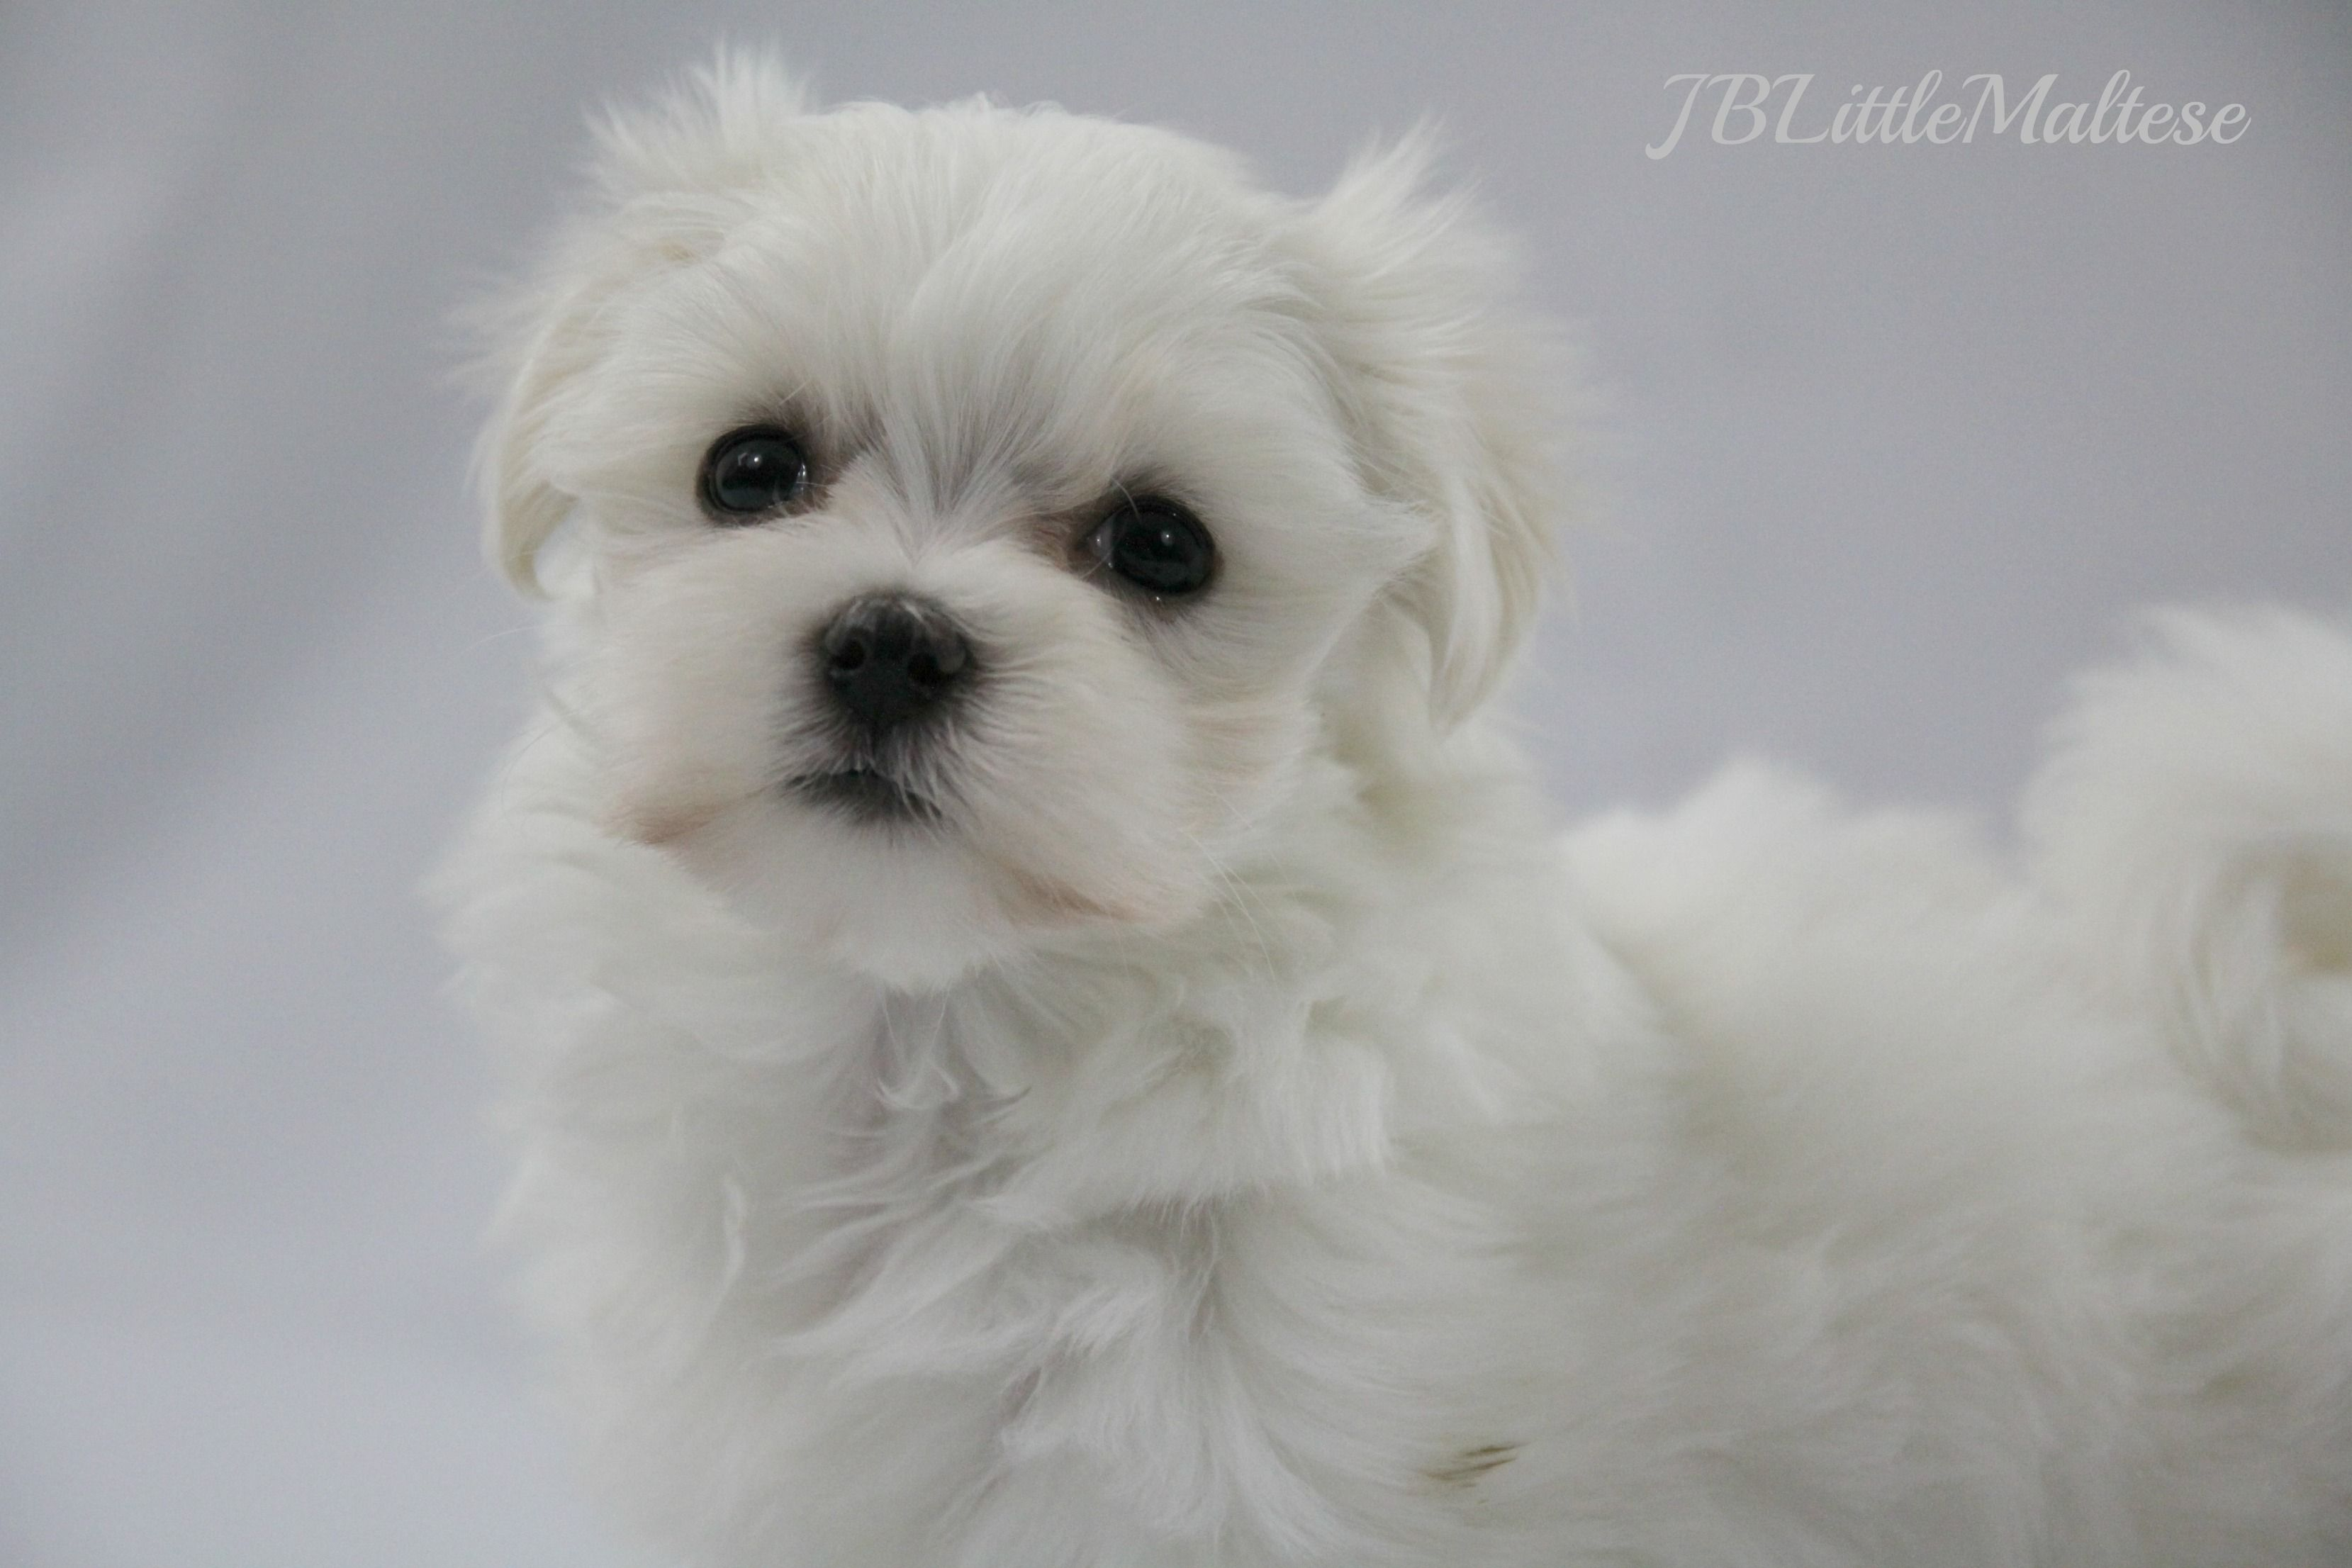 Female Maltese Puppy Sired By Grand Canadian Champion Jblittle Amigo S Bandito Maltese Puppy Puppies Toy Dog Breeds